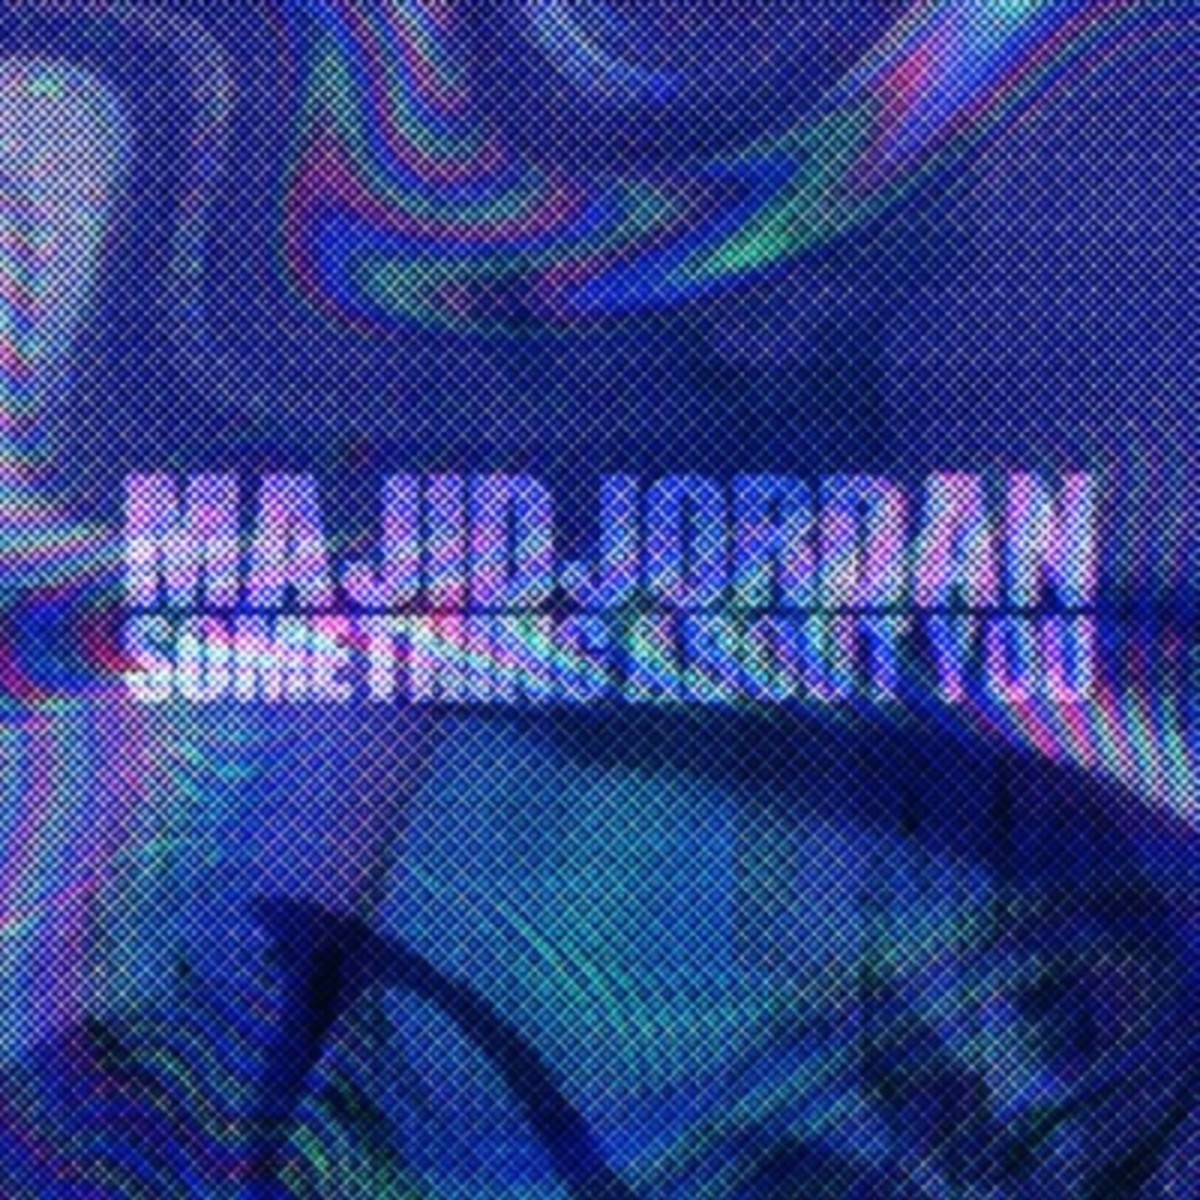 majid-jordan-something-about-you.jpg